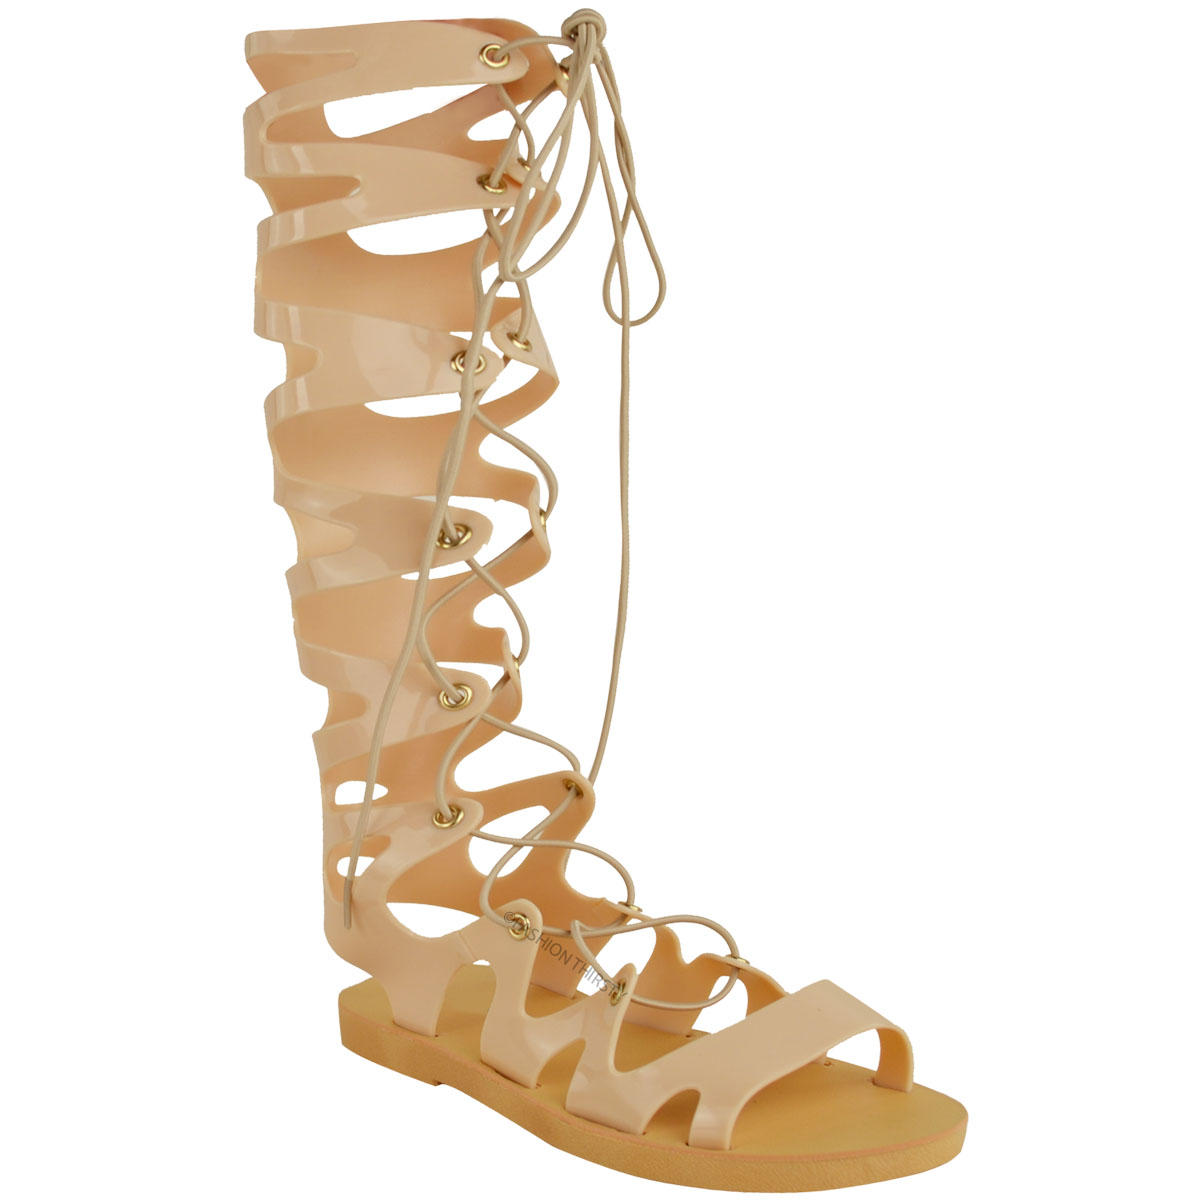 Details about Womens Ladies Knee High Lace Up Jelly Sandals Gladiator Flat Summer Shoes Size